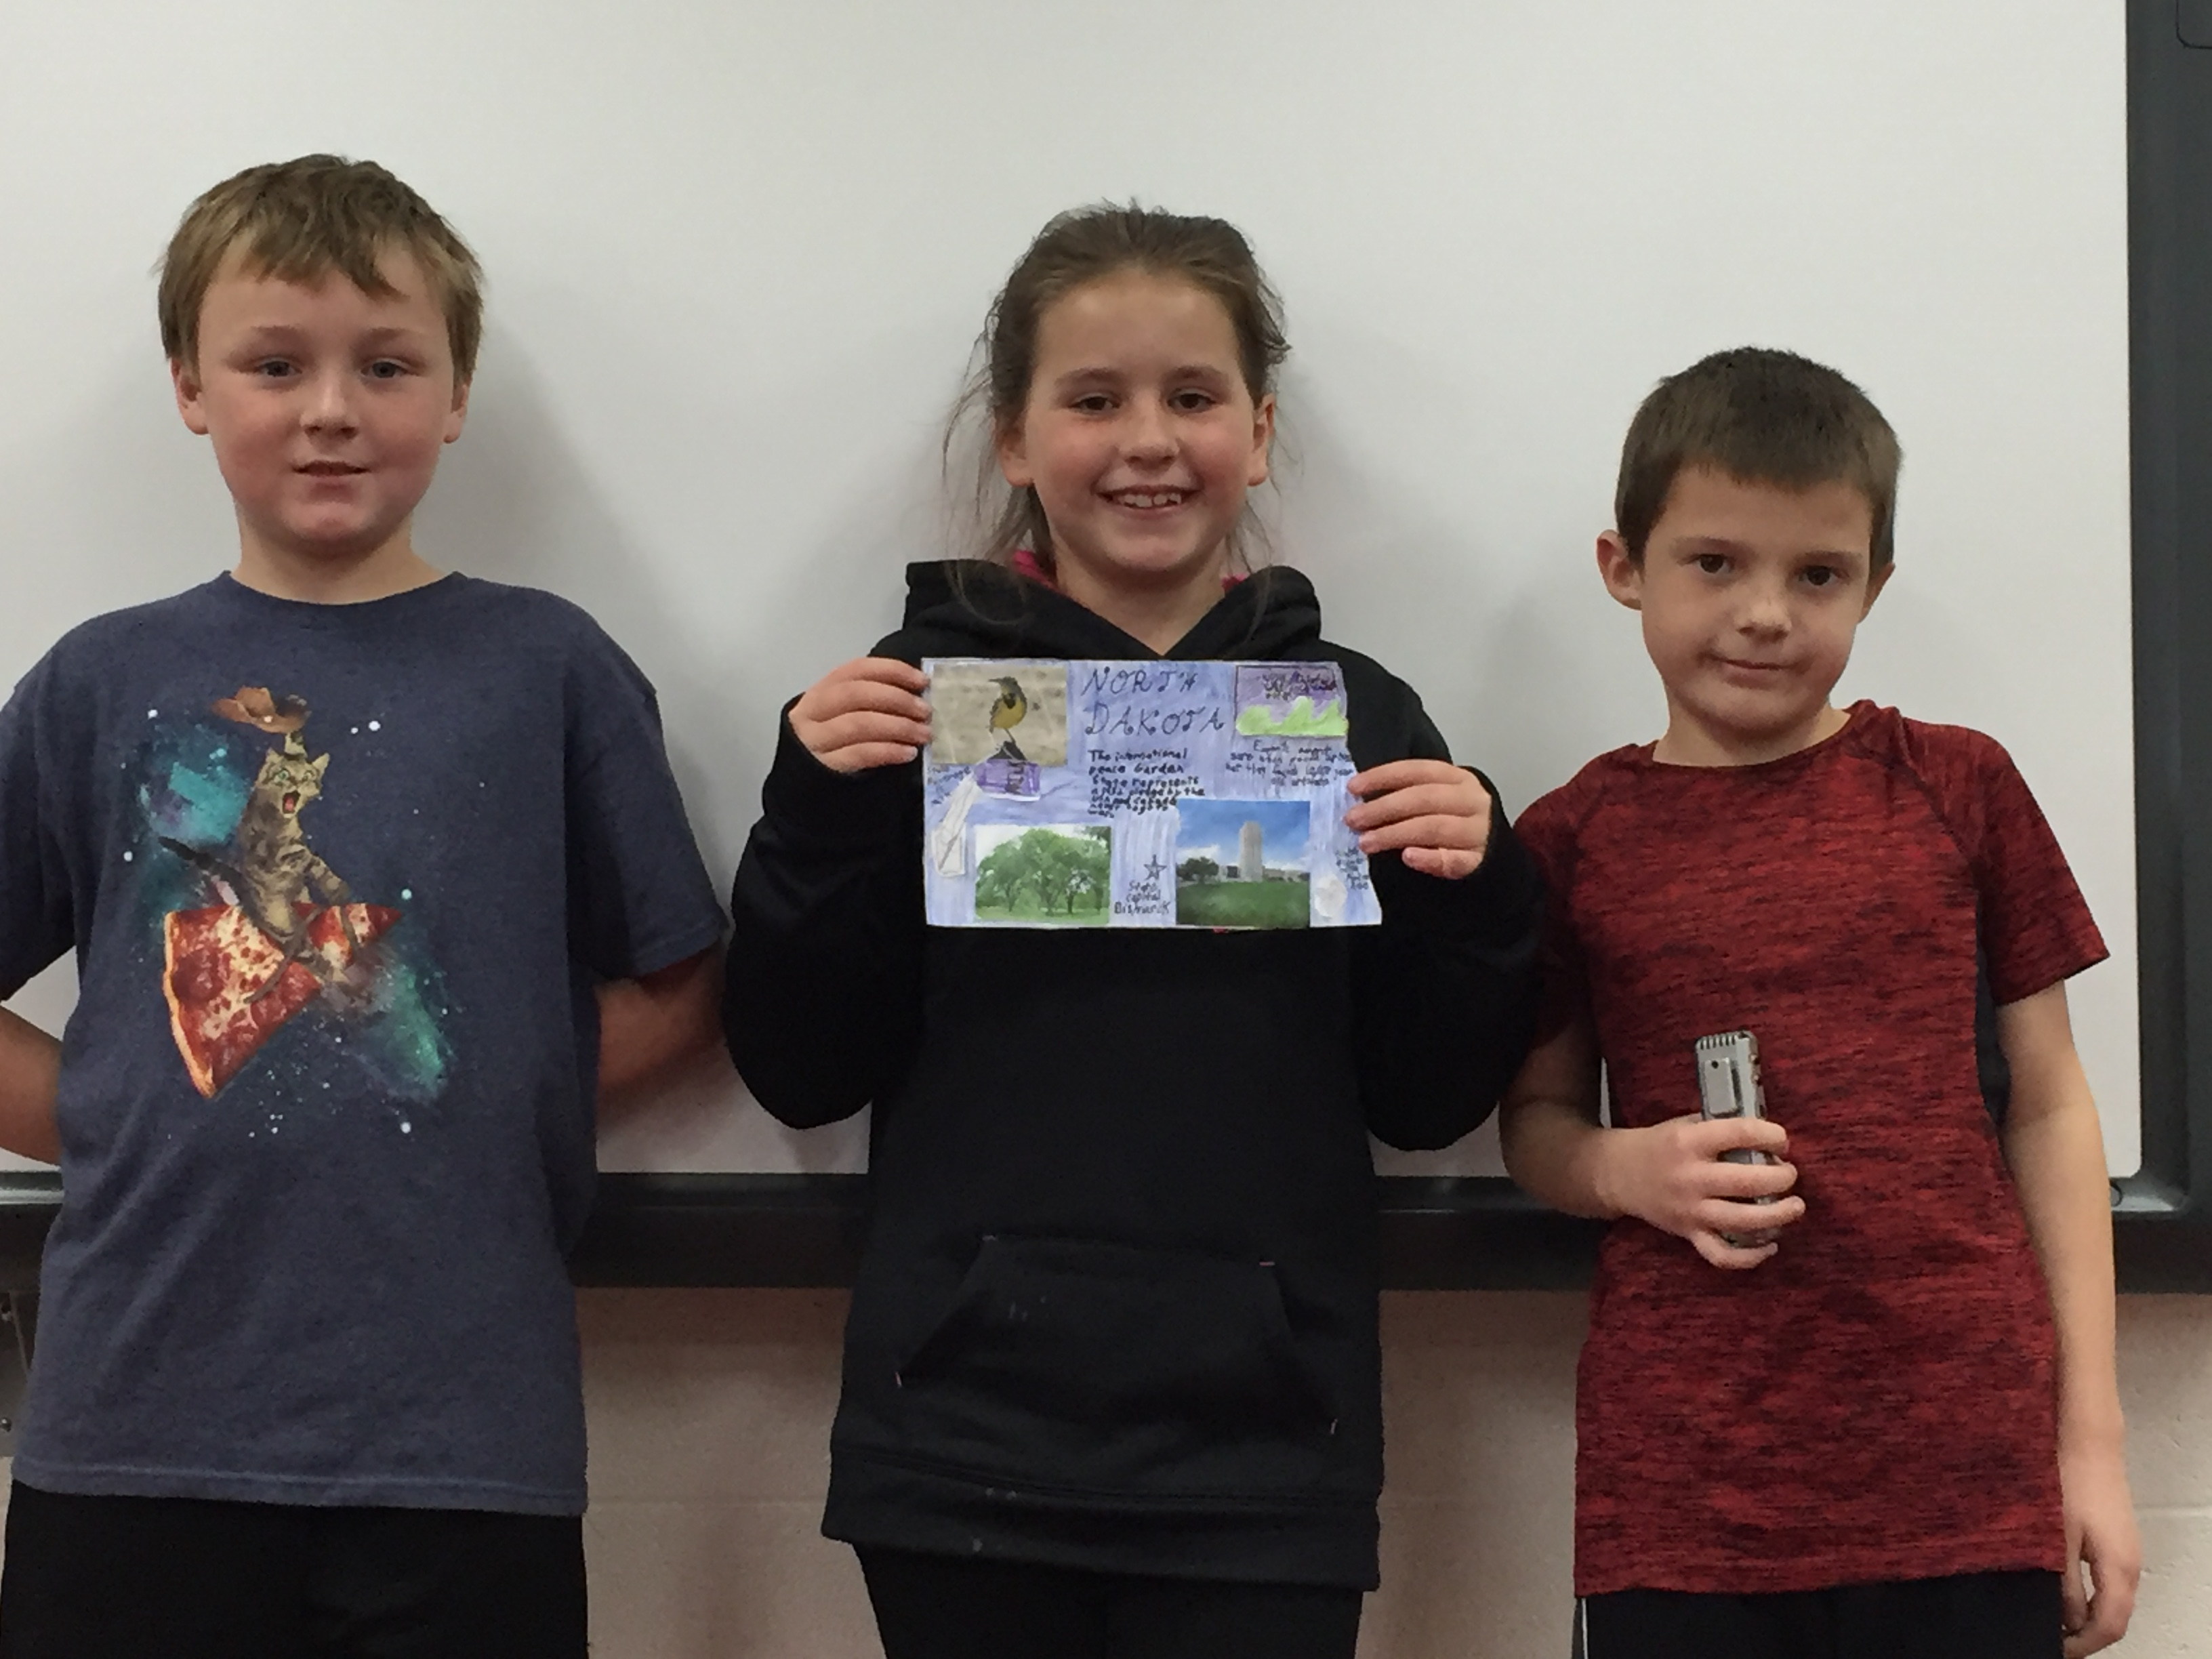 Team North Dakota! Students worked in groups to research and give a presentation on a Midwest state.